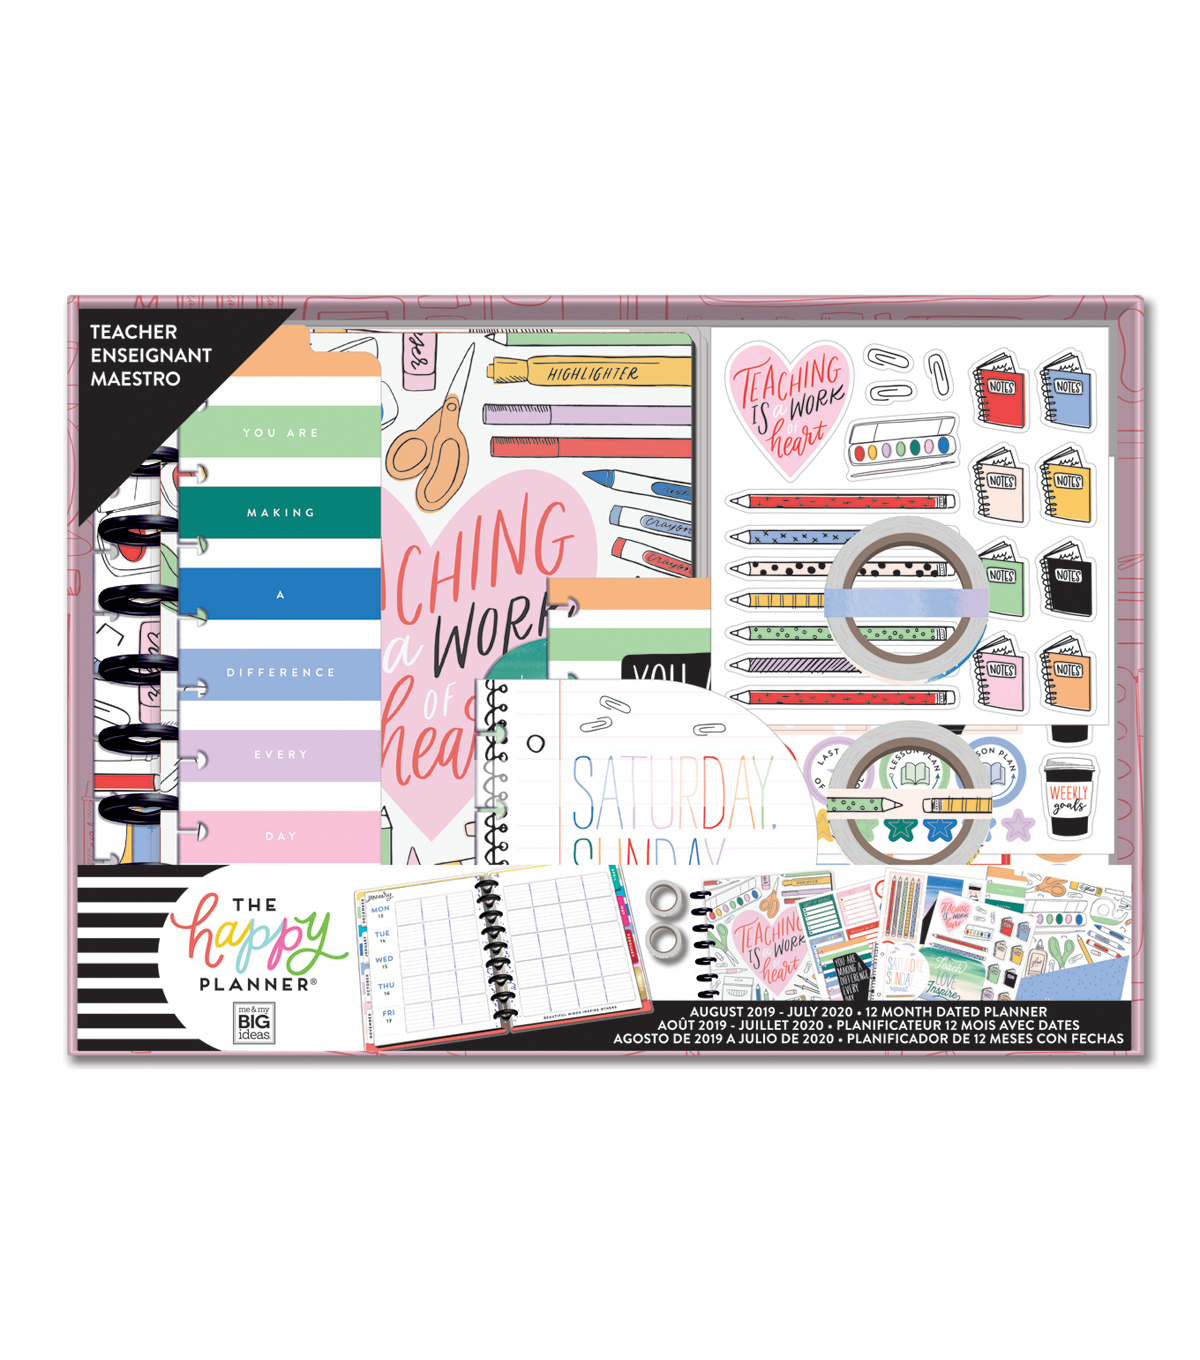 The Happy Planner 12 Month Dated Classic Planner Box-Teacher